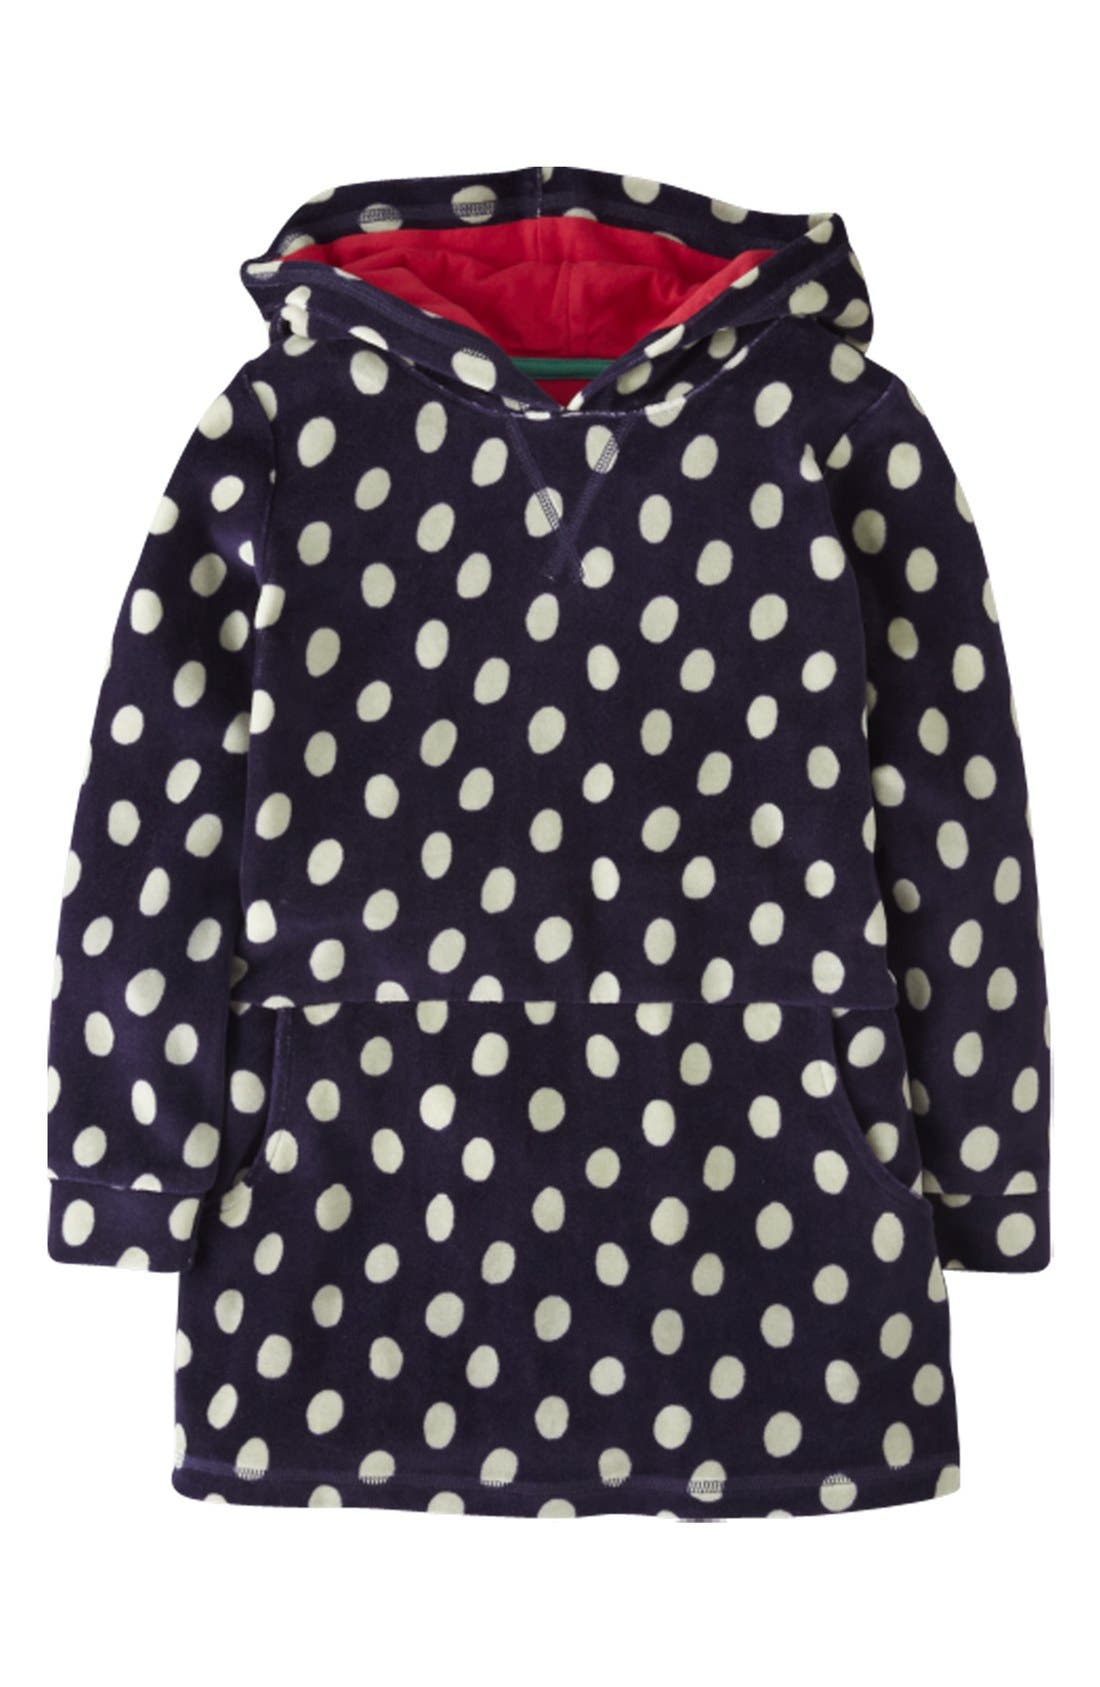 Main Image - Mini Boden Hooded Velour Dress (Little Girls & Big Girls)